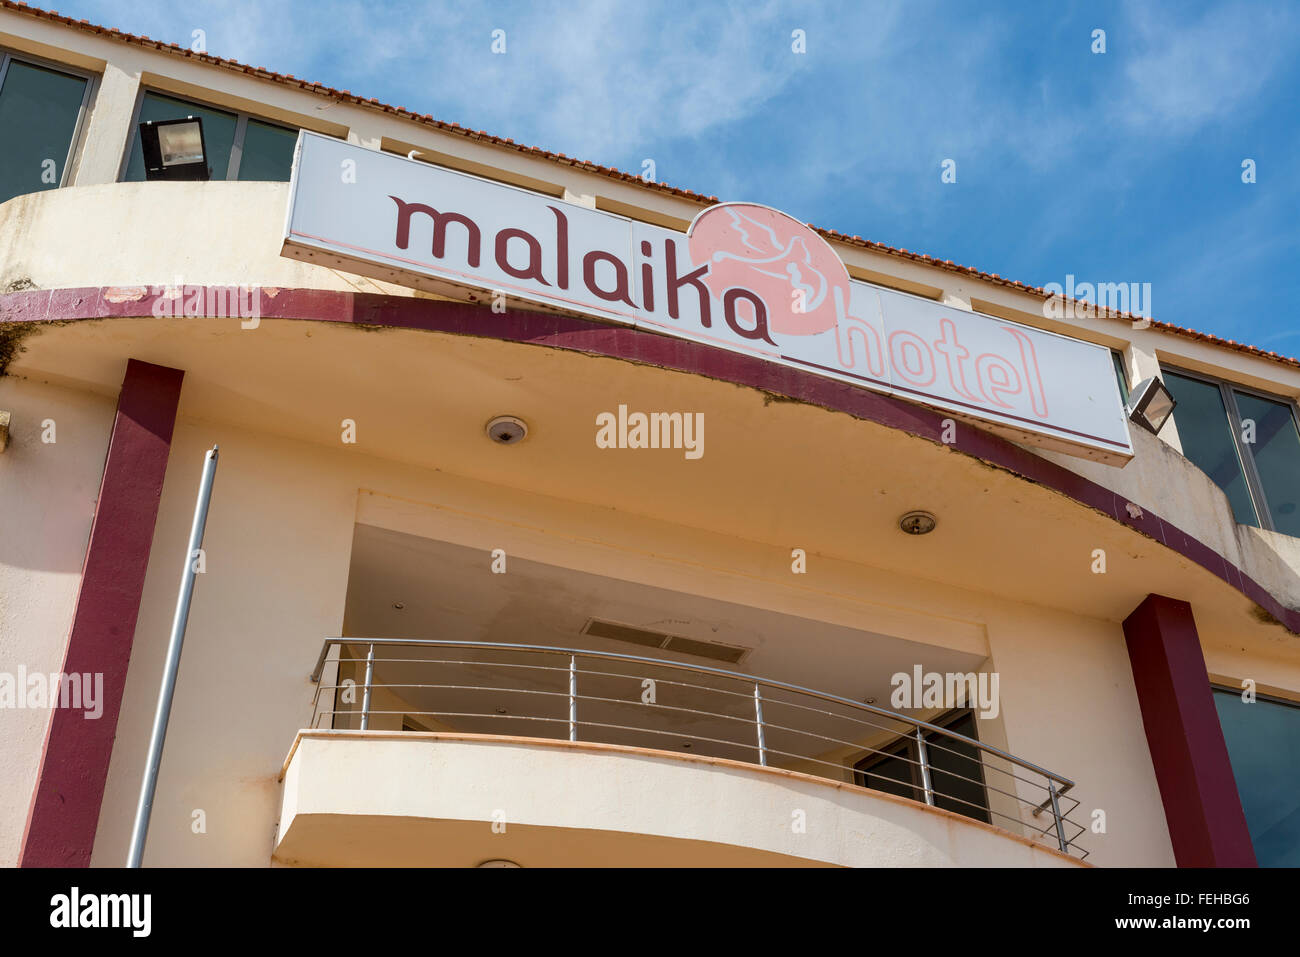 The Malaika hotel in the Guinea Bissau capital city of Bissau. - Stock Image